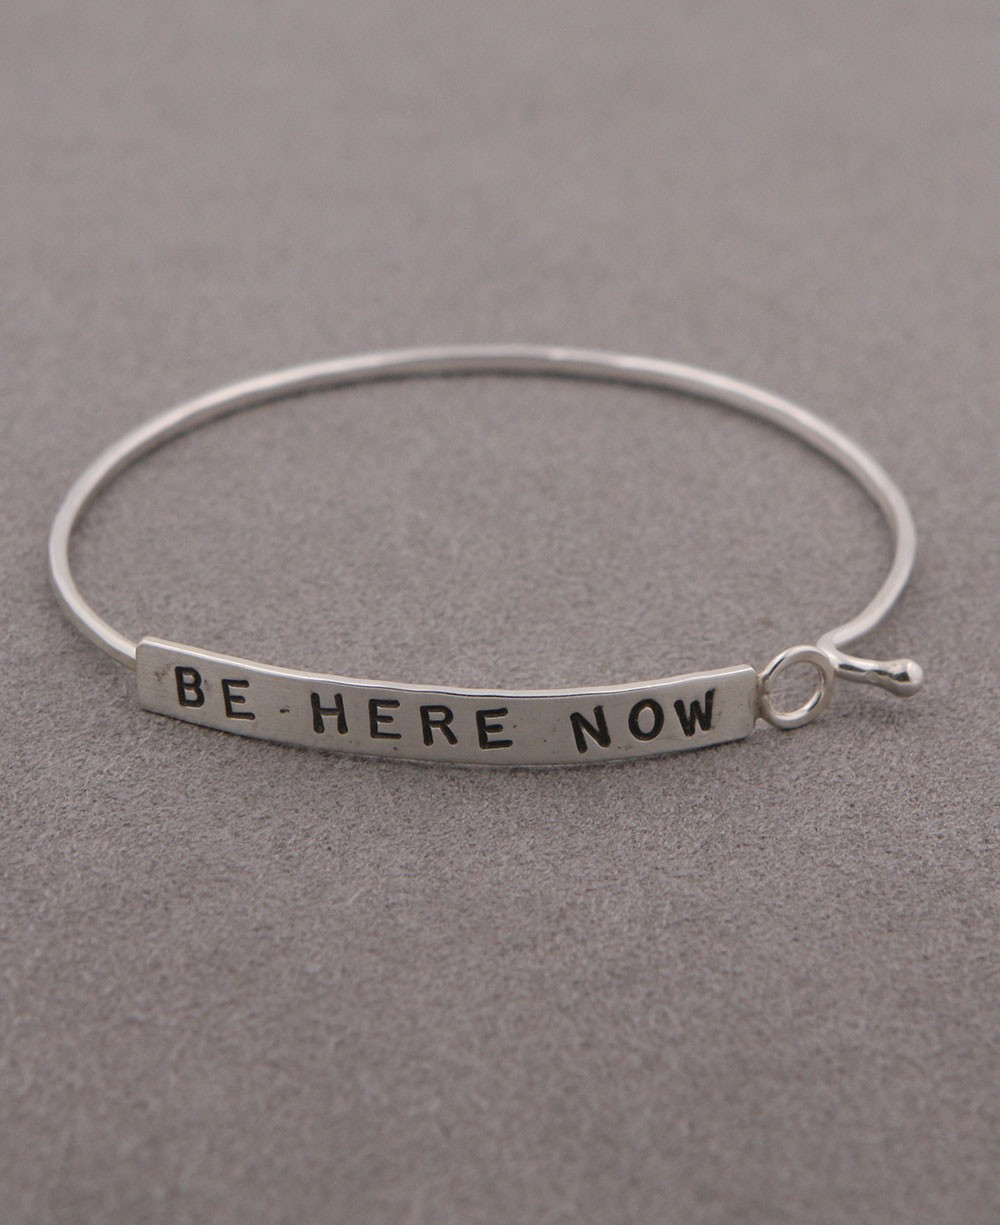 Inspirational Jewelry, Be Here Now Bracelet, Silver